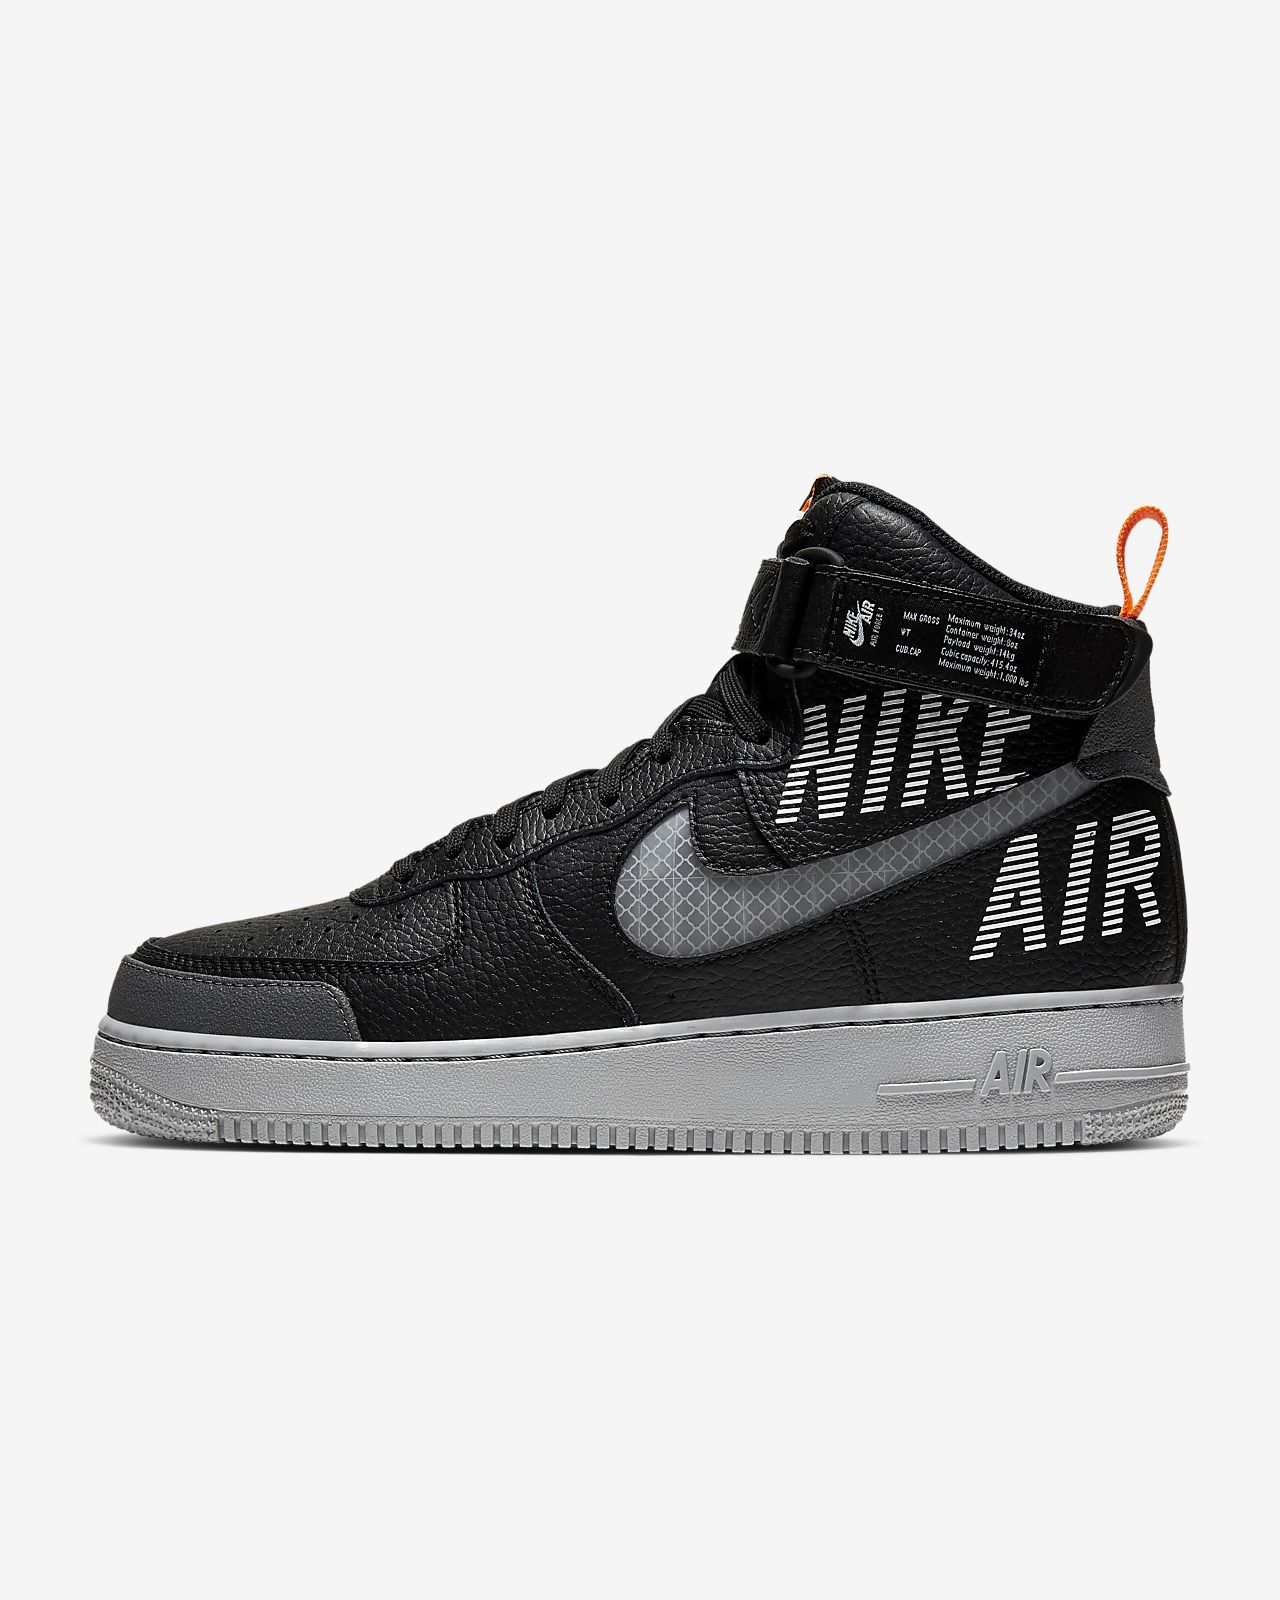 Nike Air Force 1 High '07 LV8 2 Herrenschuh